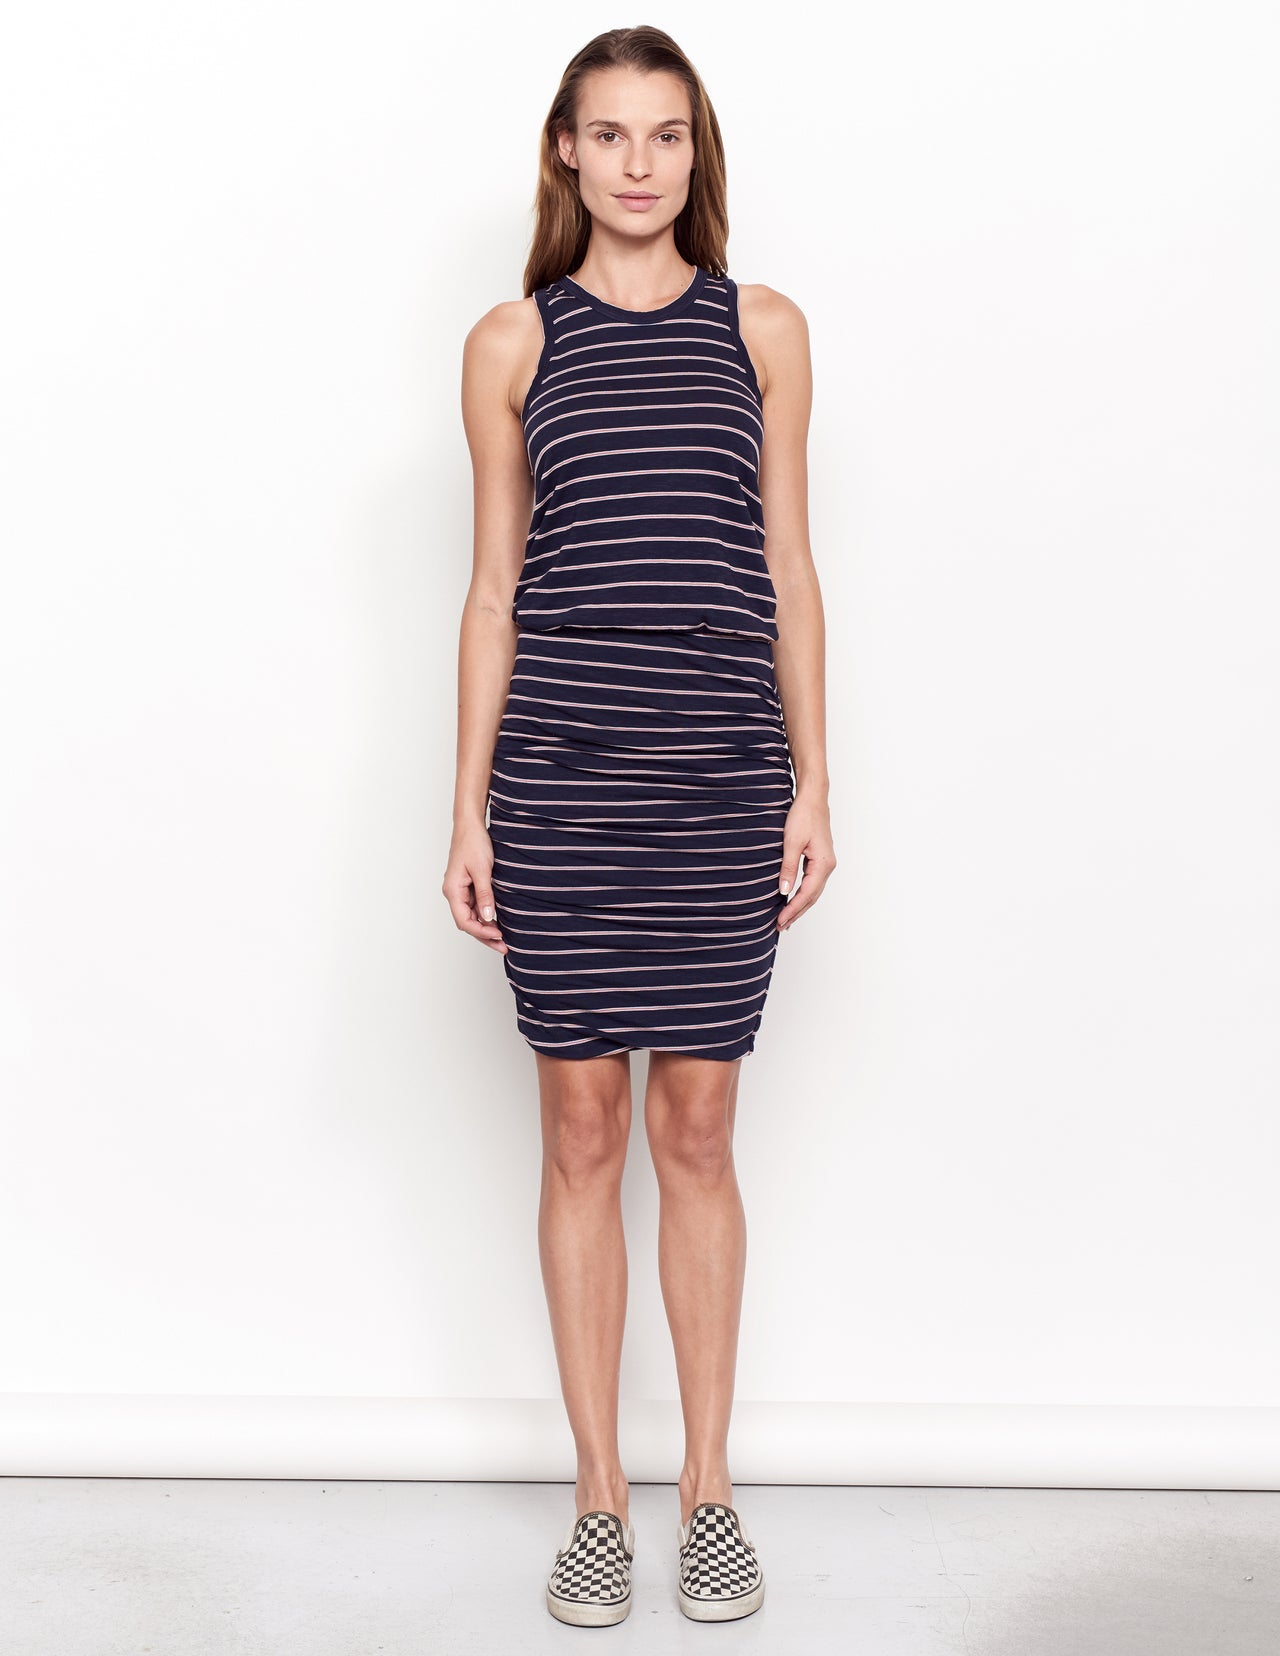 ee9e4b21312fb Sundry Stripes Sleeveless Dress